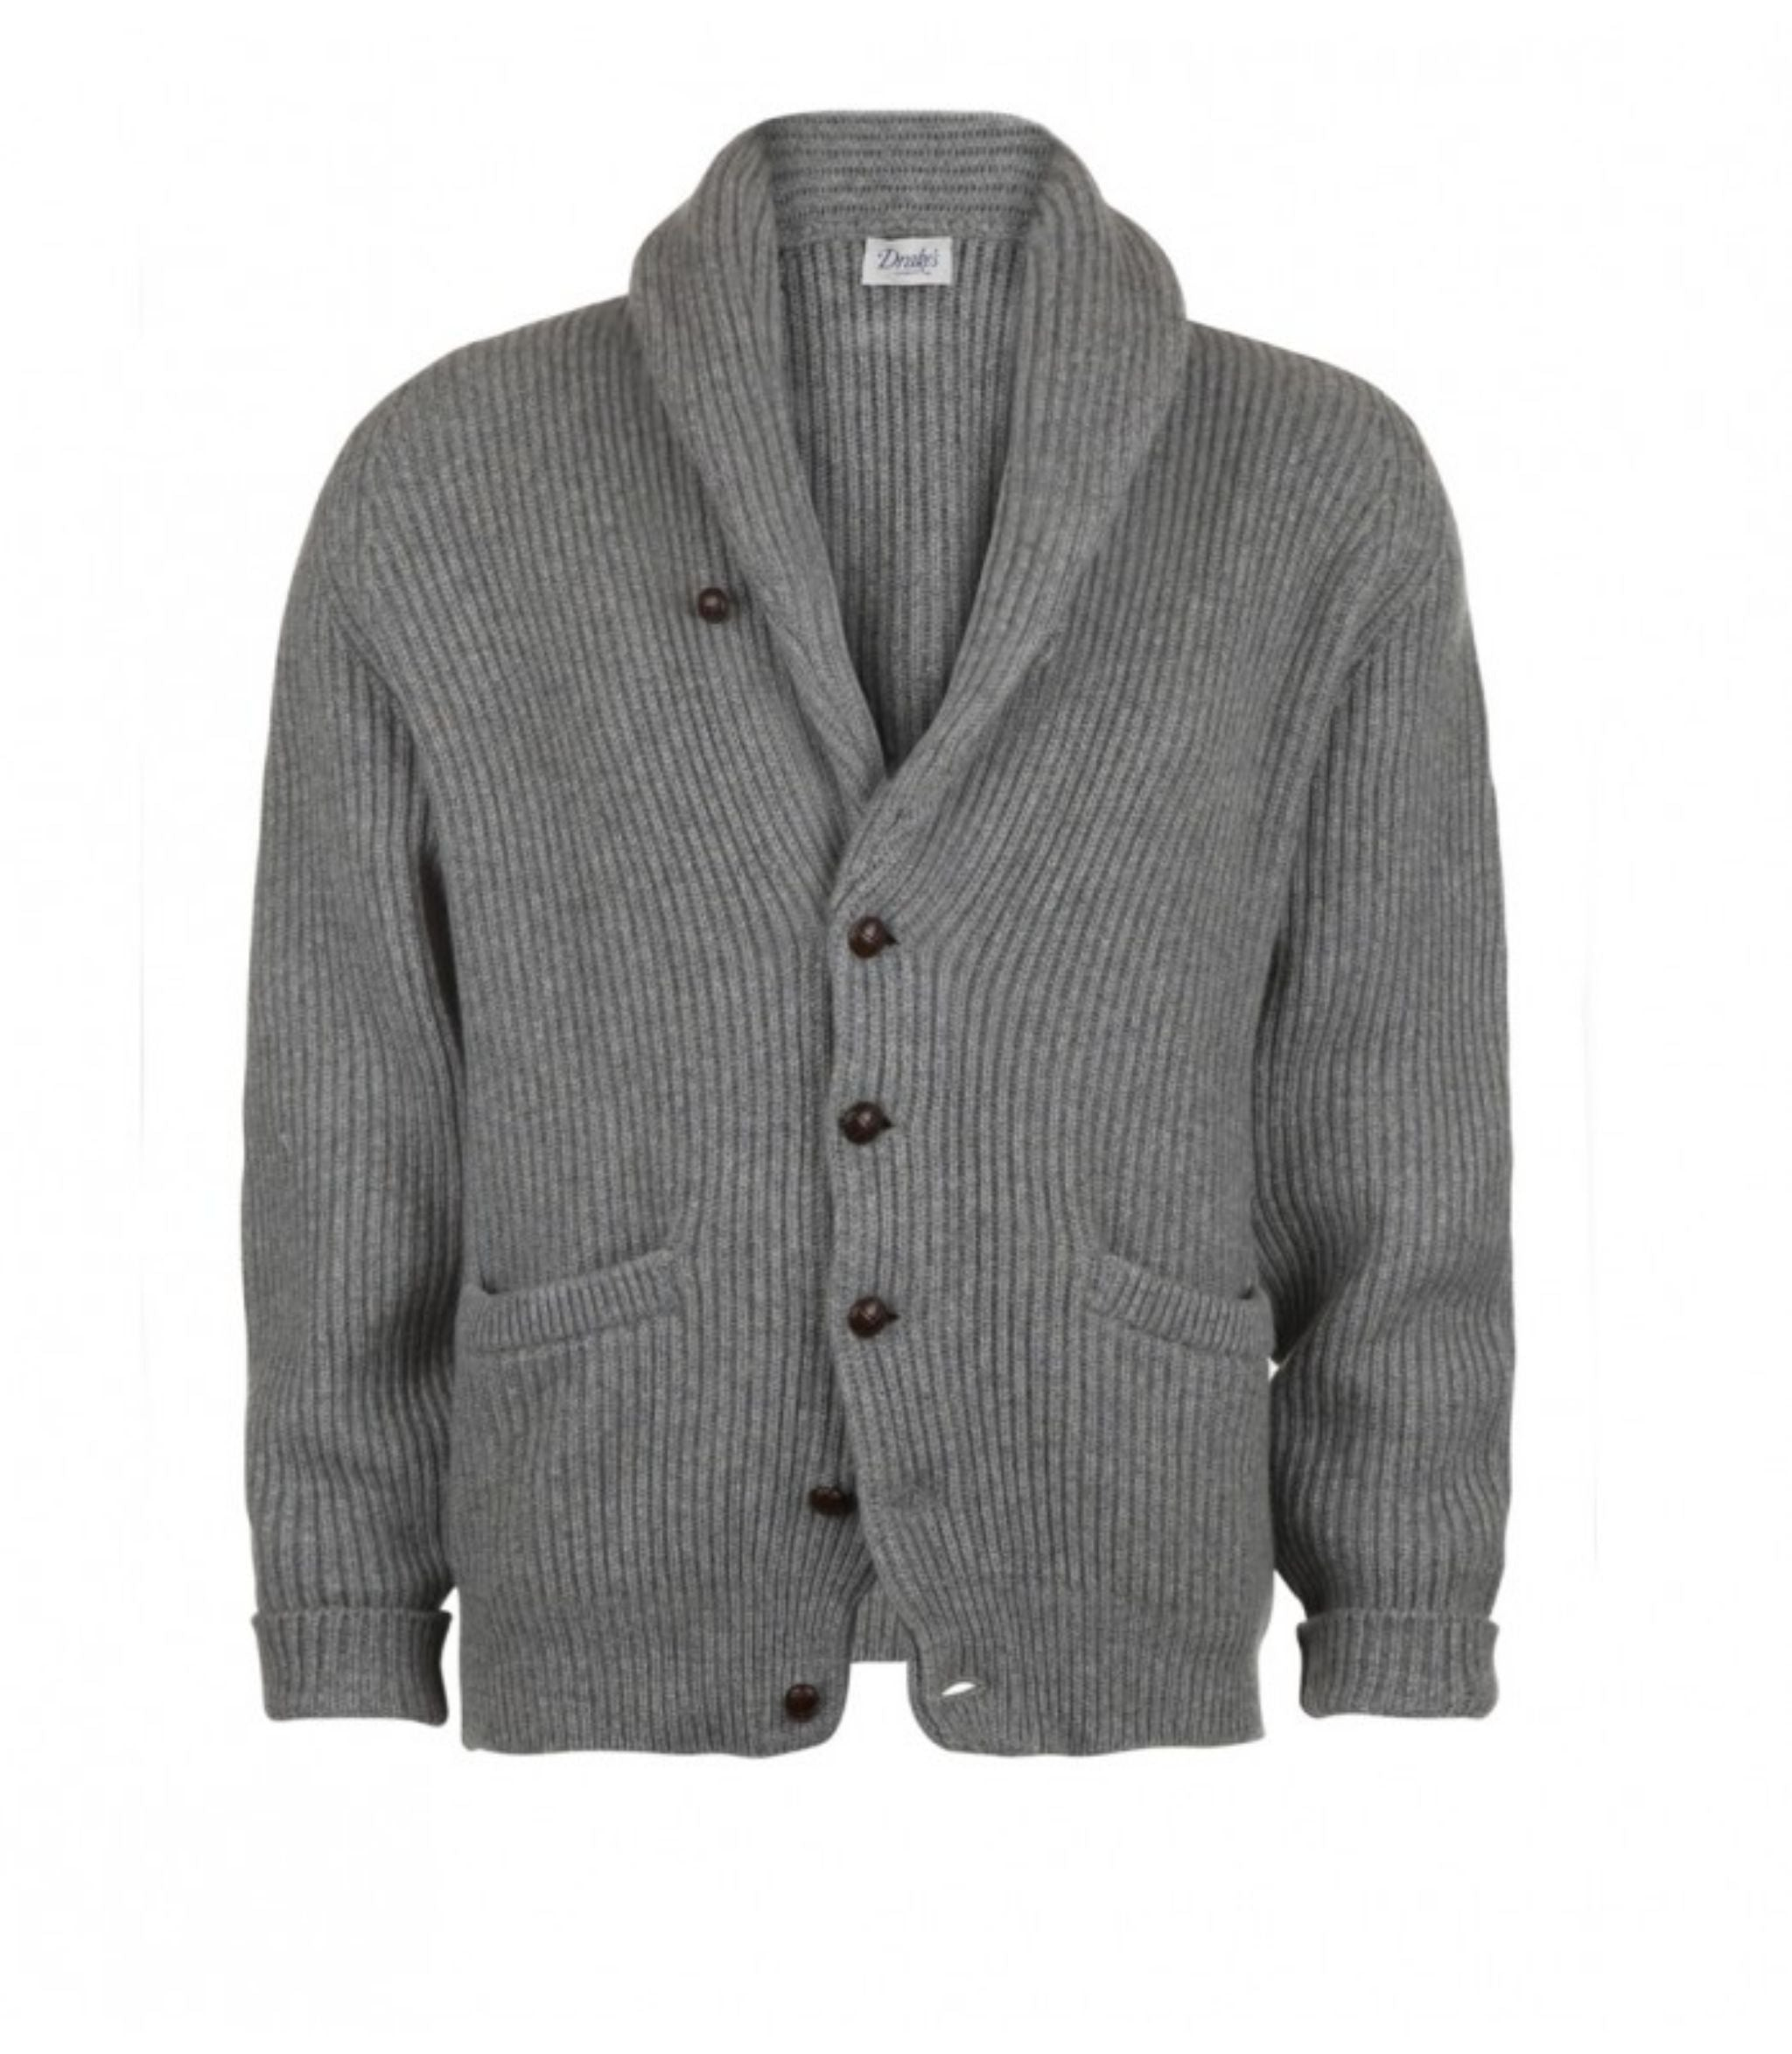 Drake's London shawl collar cardigan